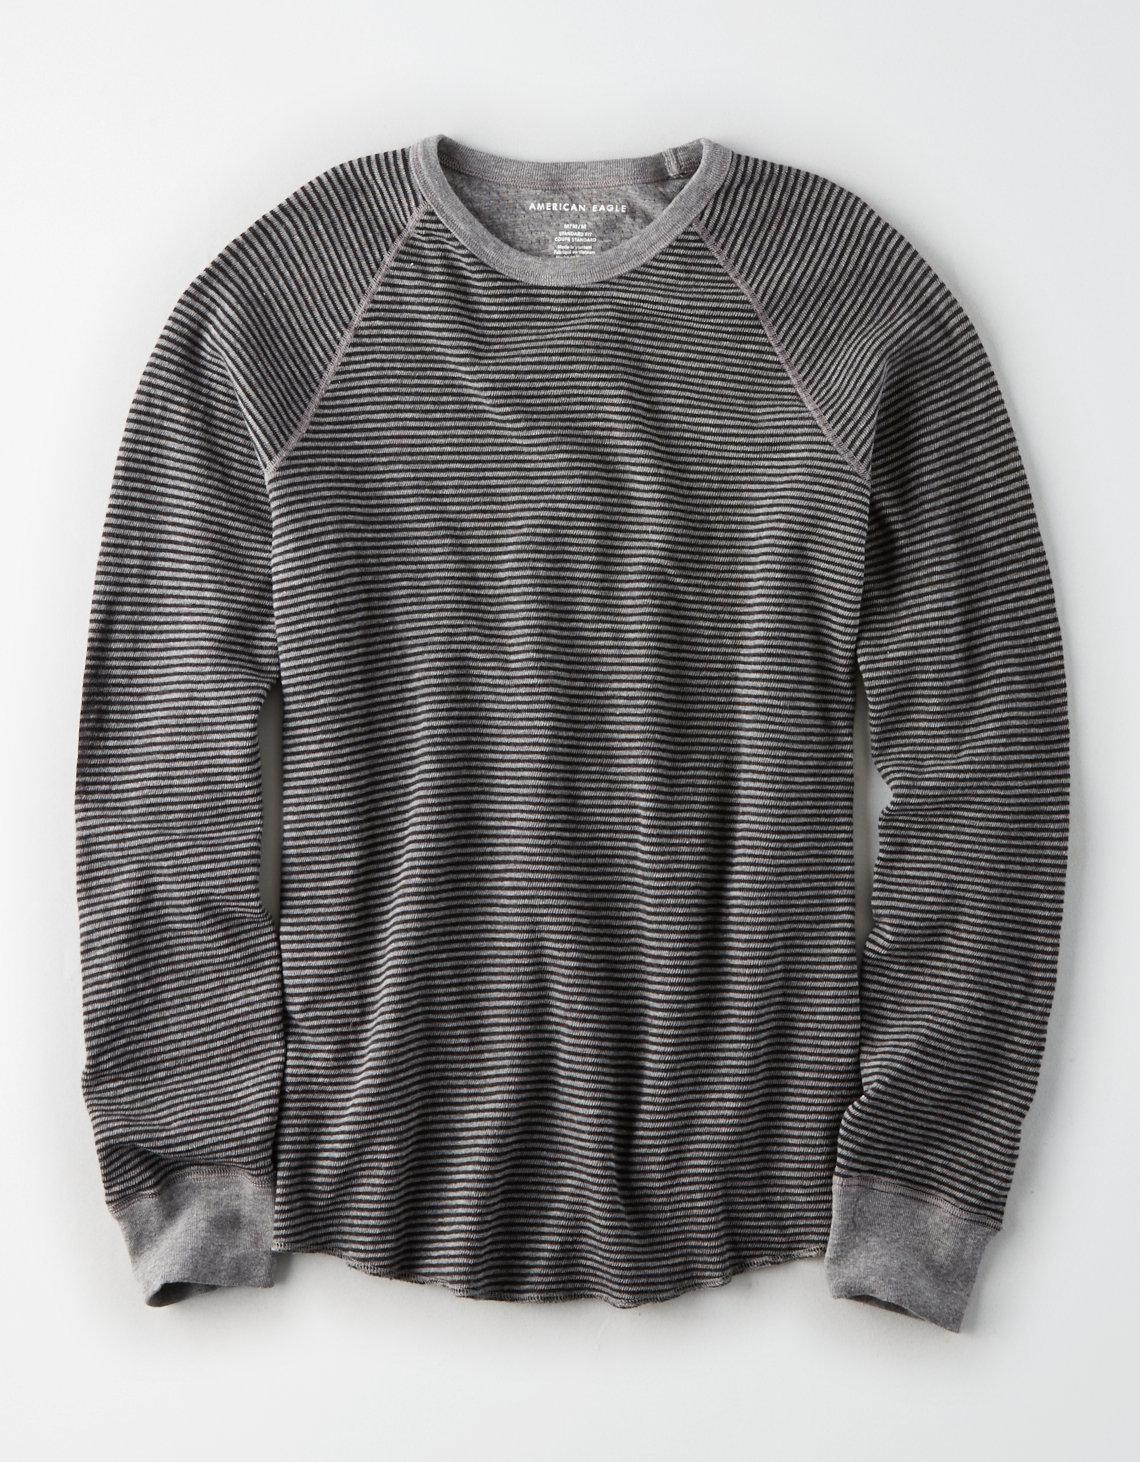 8f13c9f5724 American Eagle Ae Long Sleeve Striped Thermal T-shirt in Gray for ...